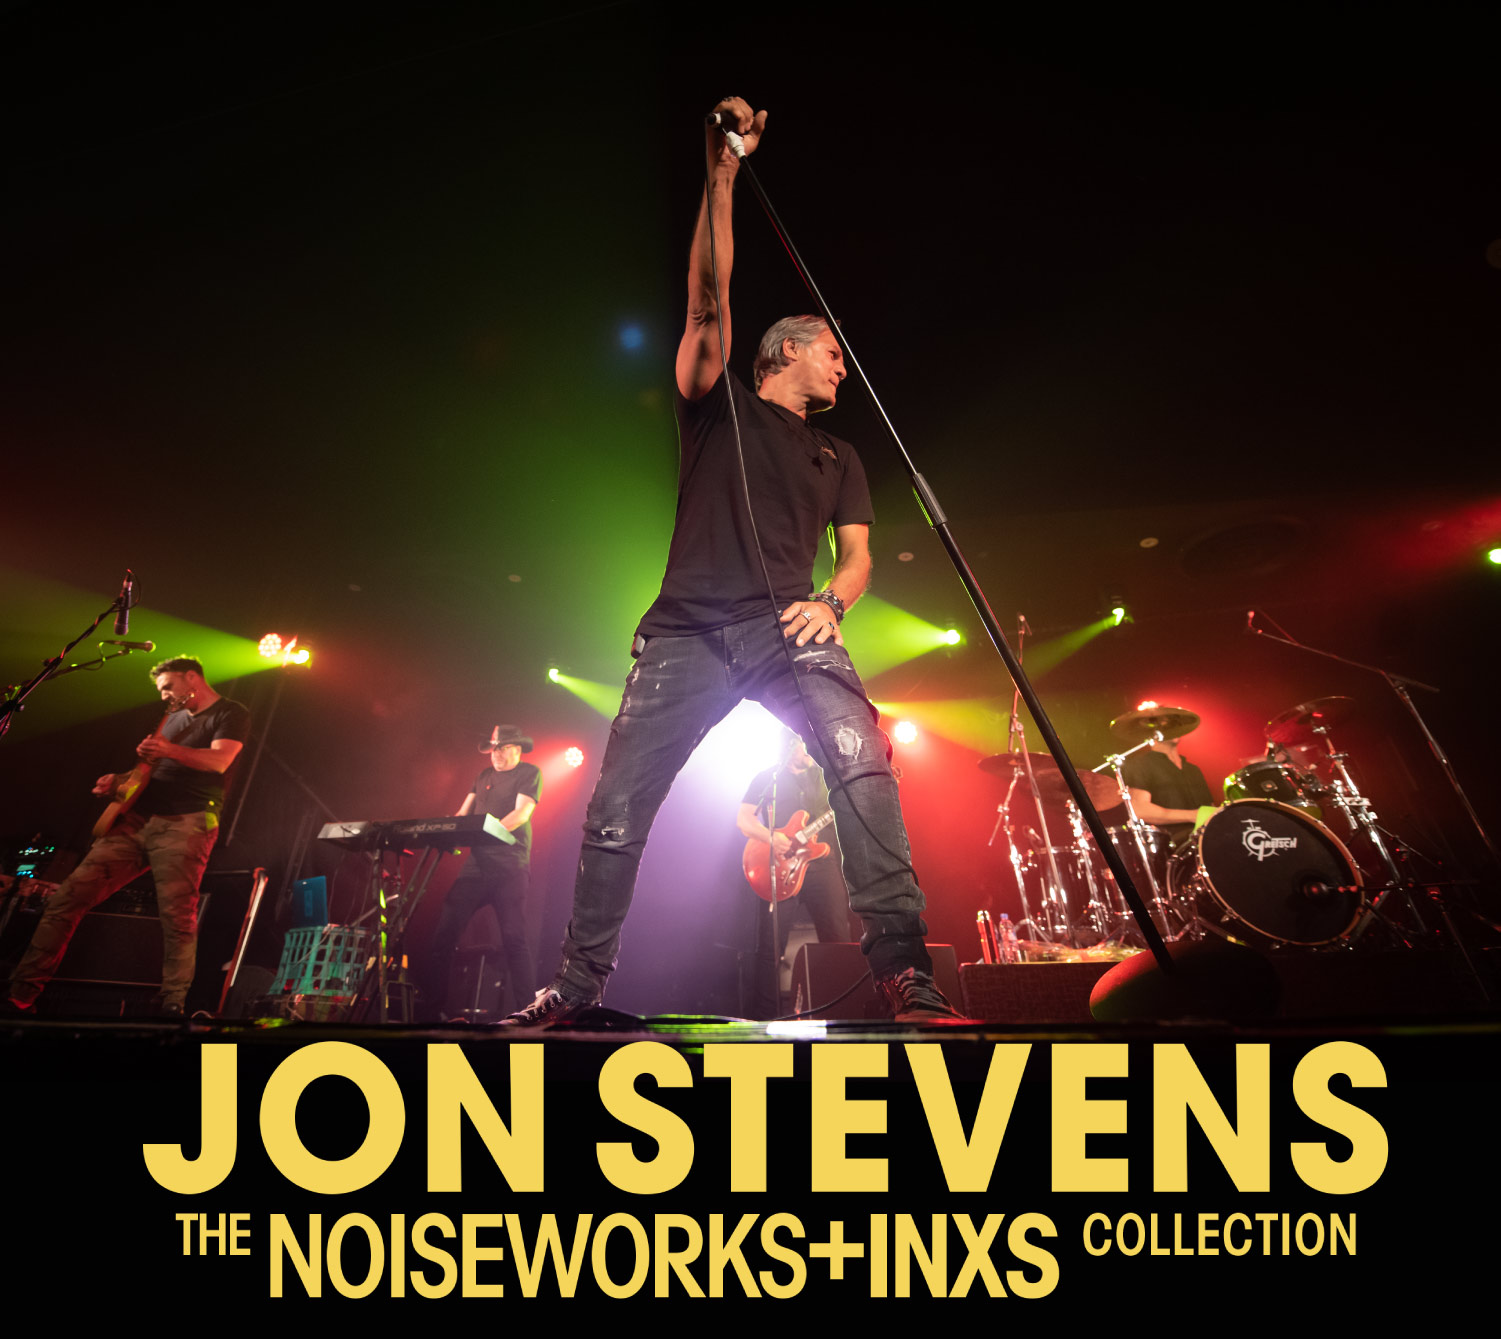 Jon Stevens live at Black Barn Amphitheatre